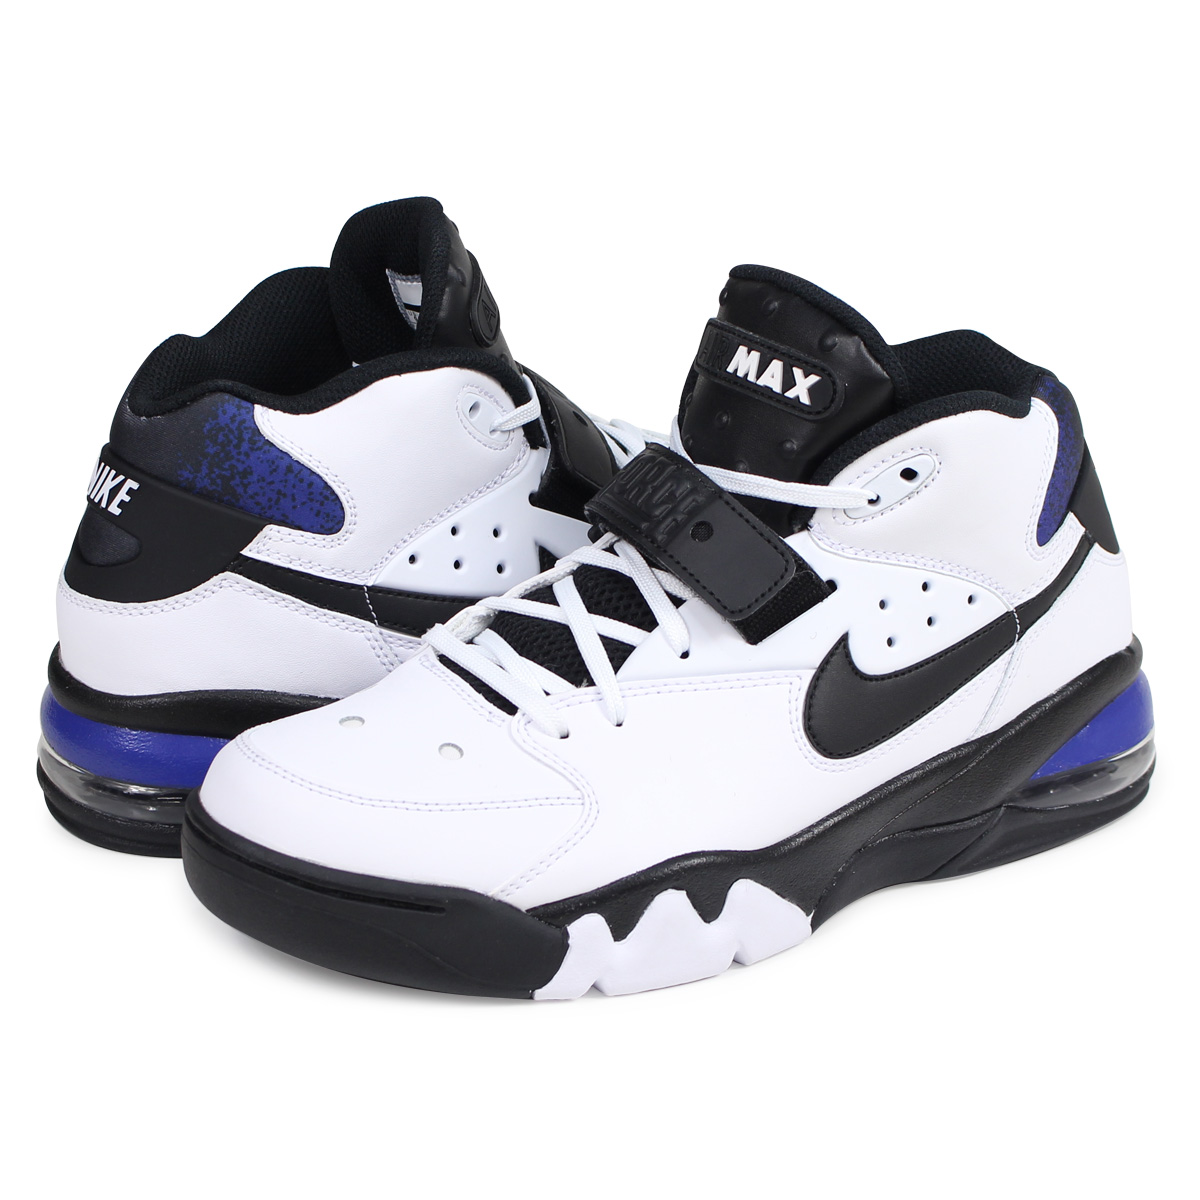 NIKE AIR FORCE MAX 93 CHARLES BARKLEY Nike air force max sneakers AH5534 100 men white [load planned Shinnyu load in reservation product 113